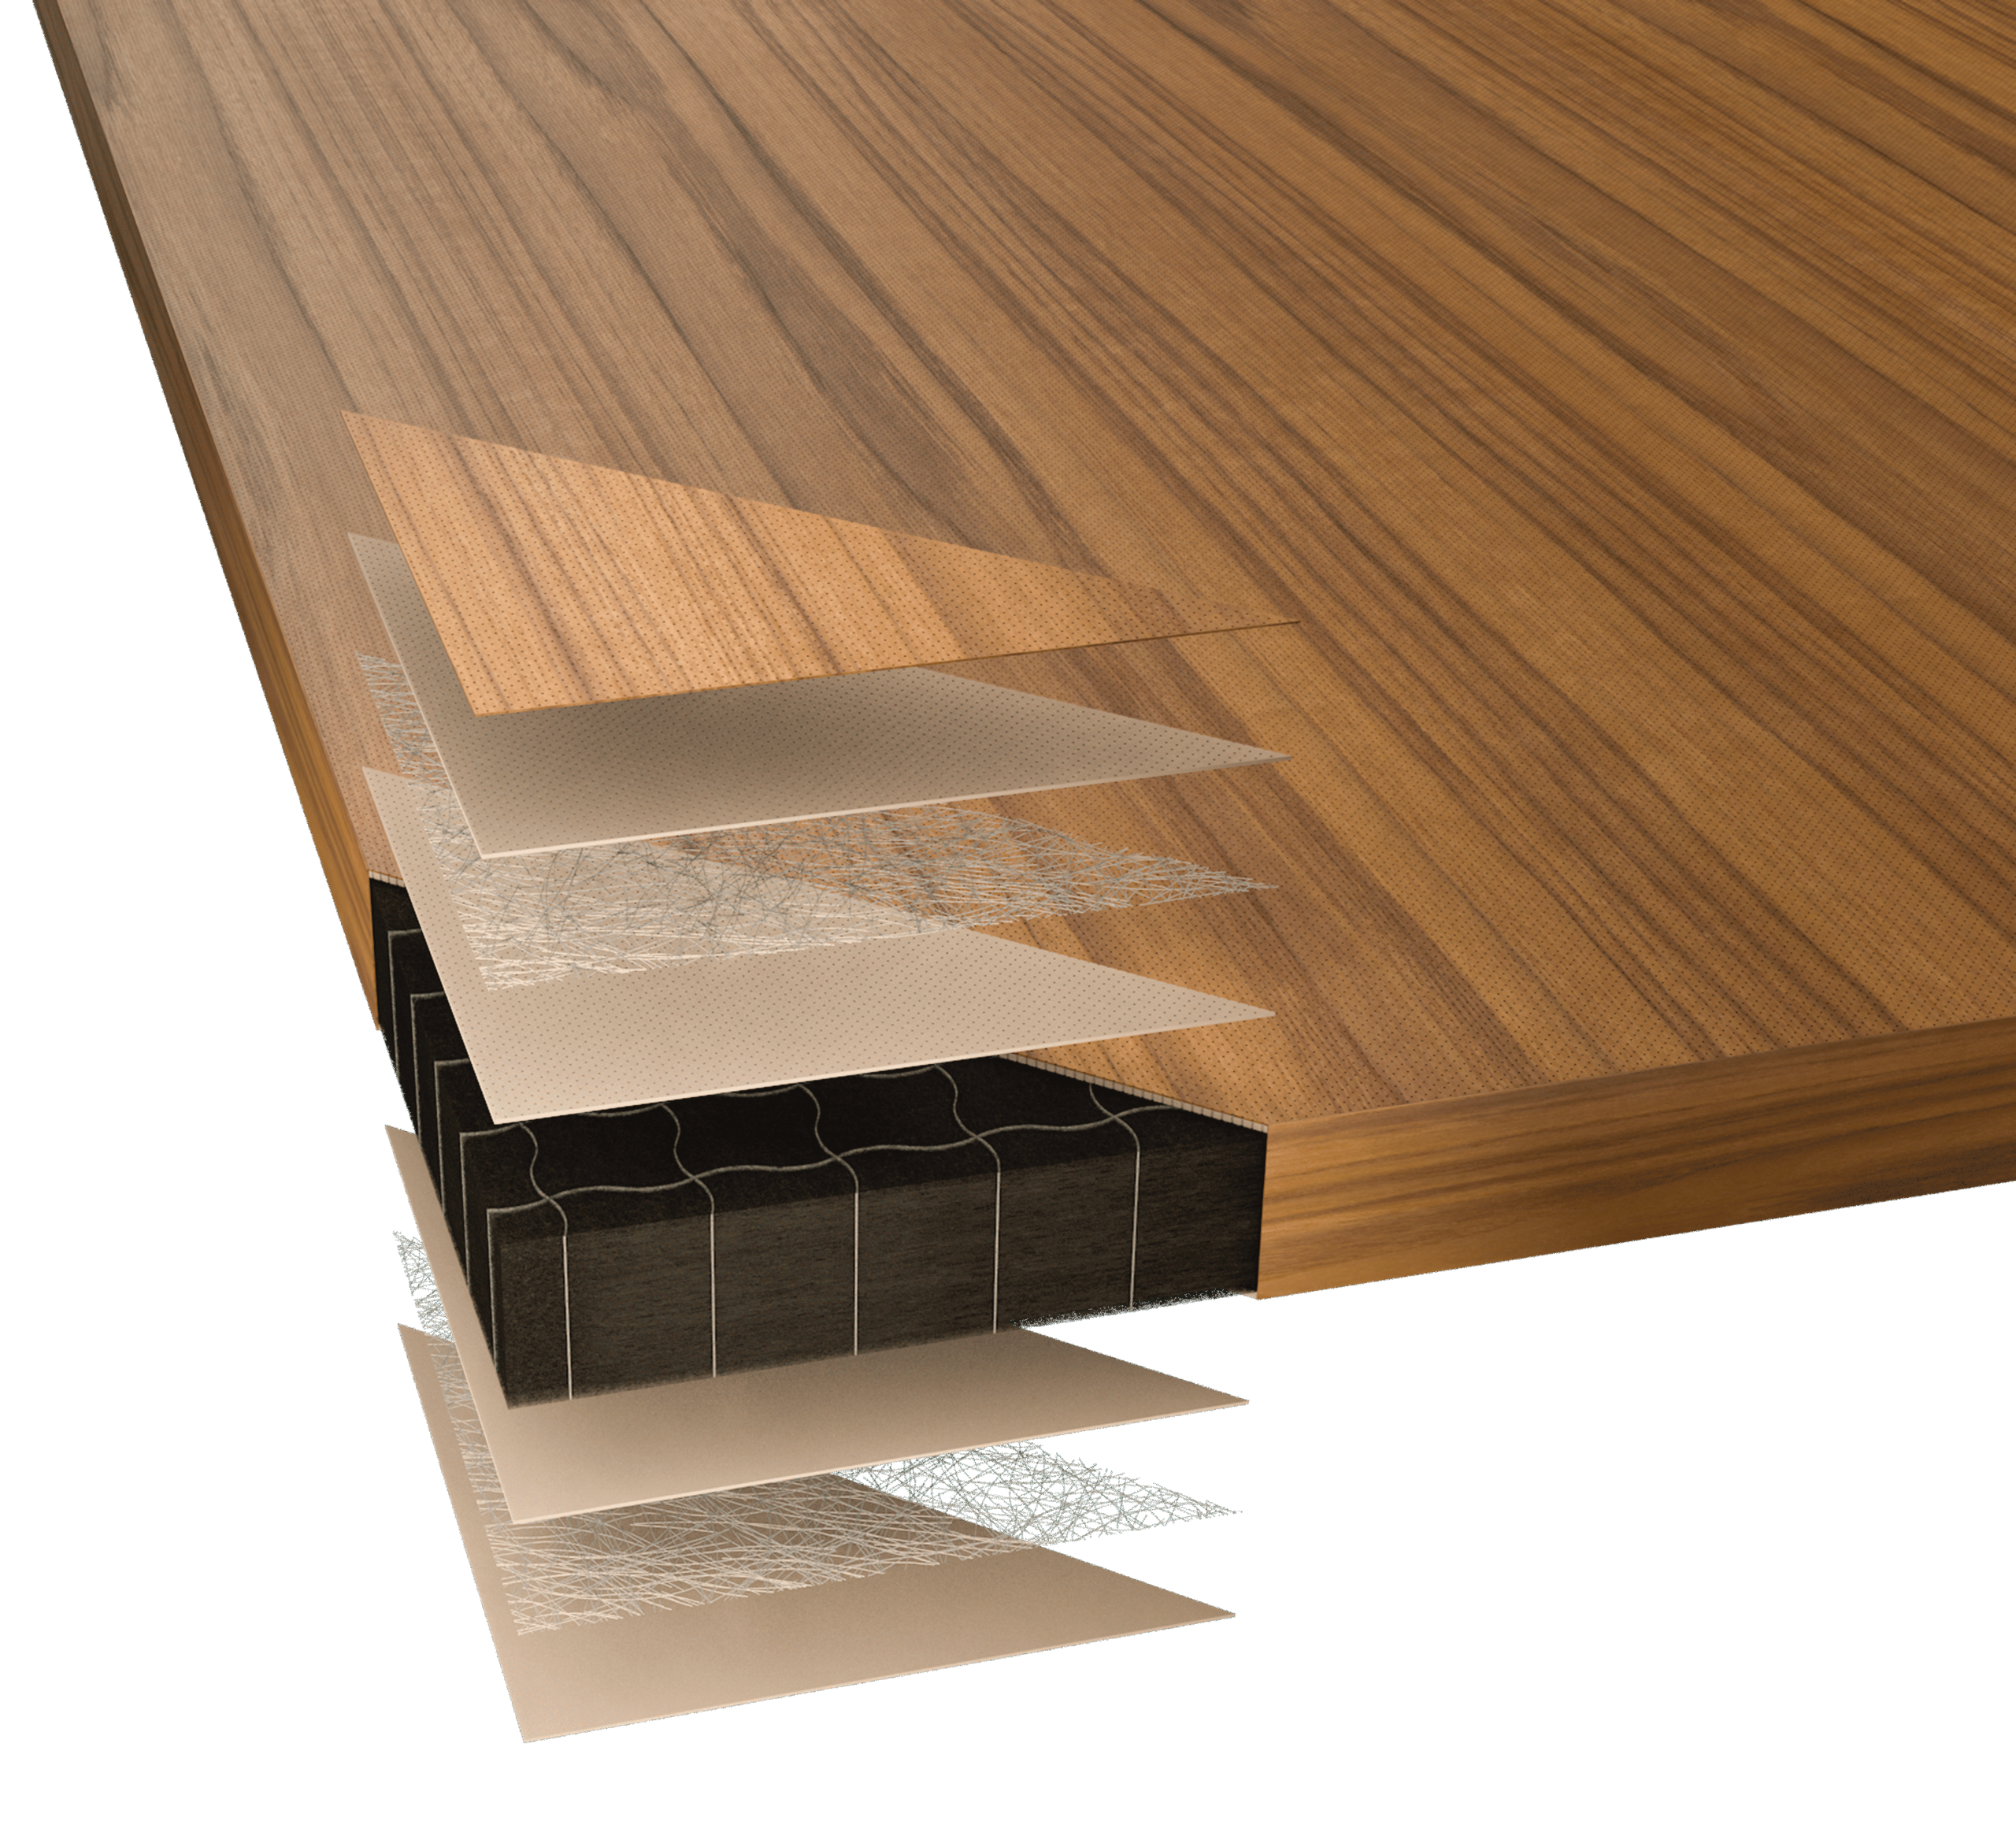 Alta Acoustic Ceiling Panels feature SoundPly's patented core for unrivaled performance.